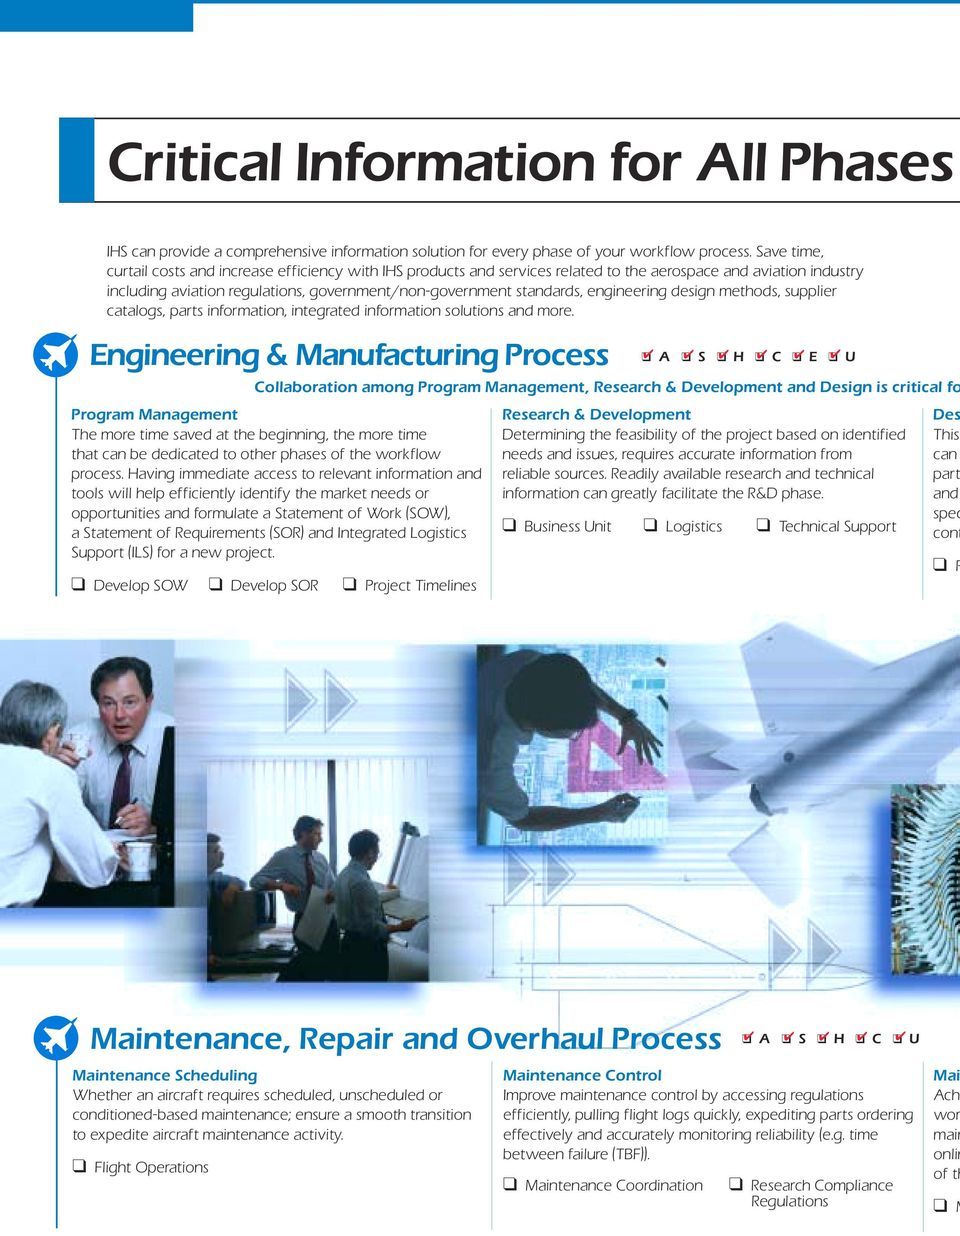 engineering design methods, supplier catalogs, parts information, integrated information solutions and more.